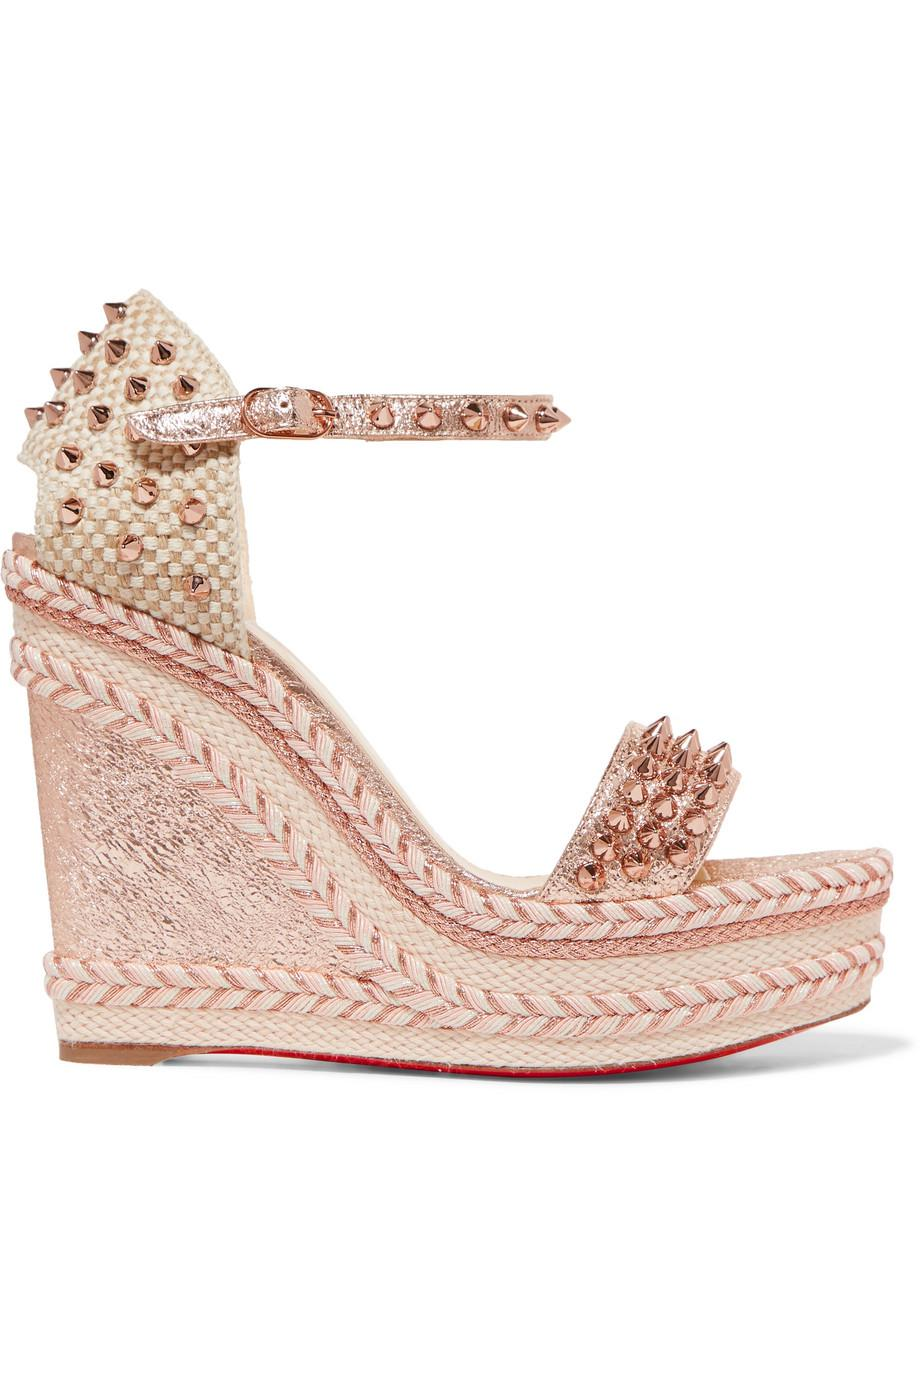 e3213ee68 Gallery. Previously sold at: NET-A-PORTER · Women's Christian Louboutin  Spike Shoes